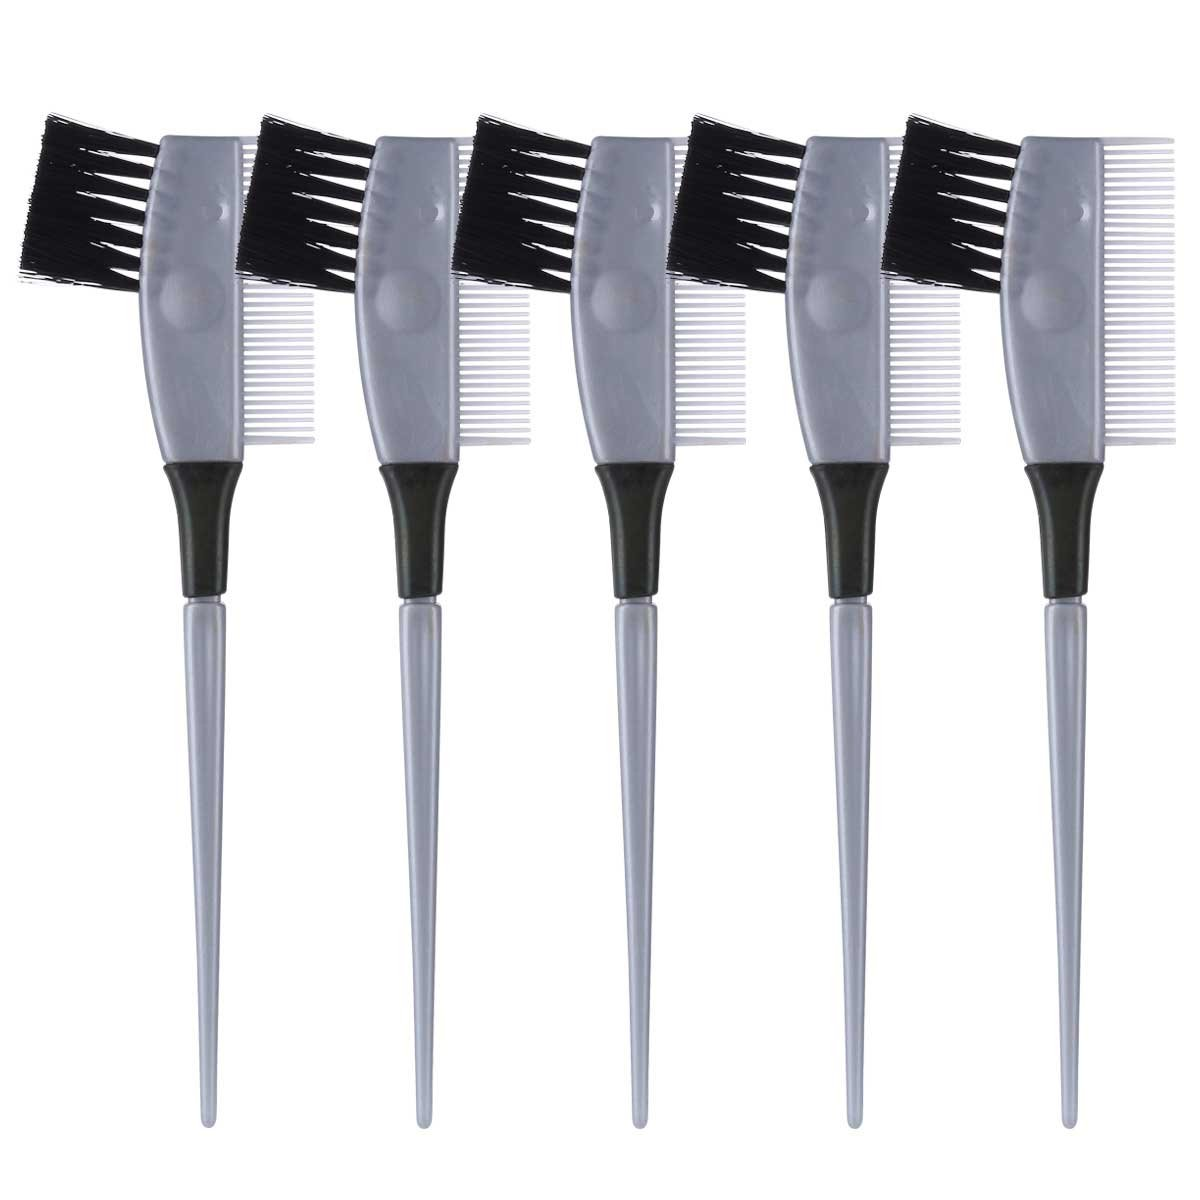 Salon Hair Coloring Dyeing Kit Color Dye Brush Comb Hair Coloring